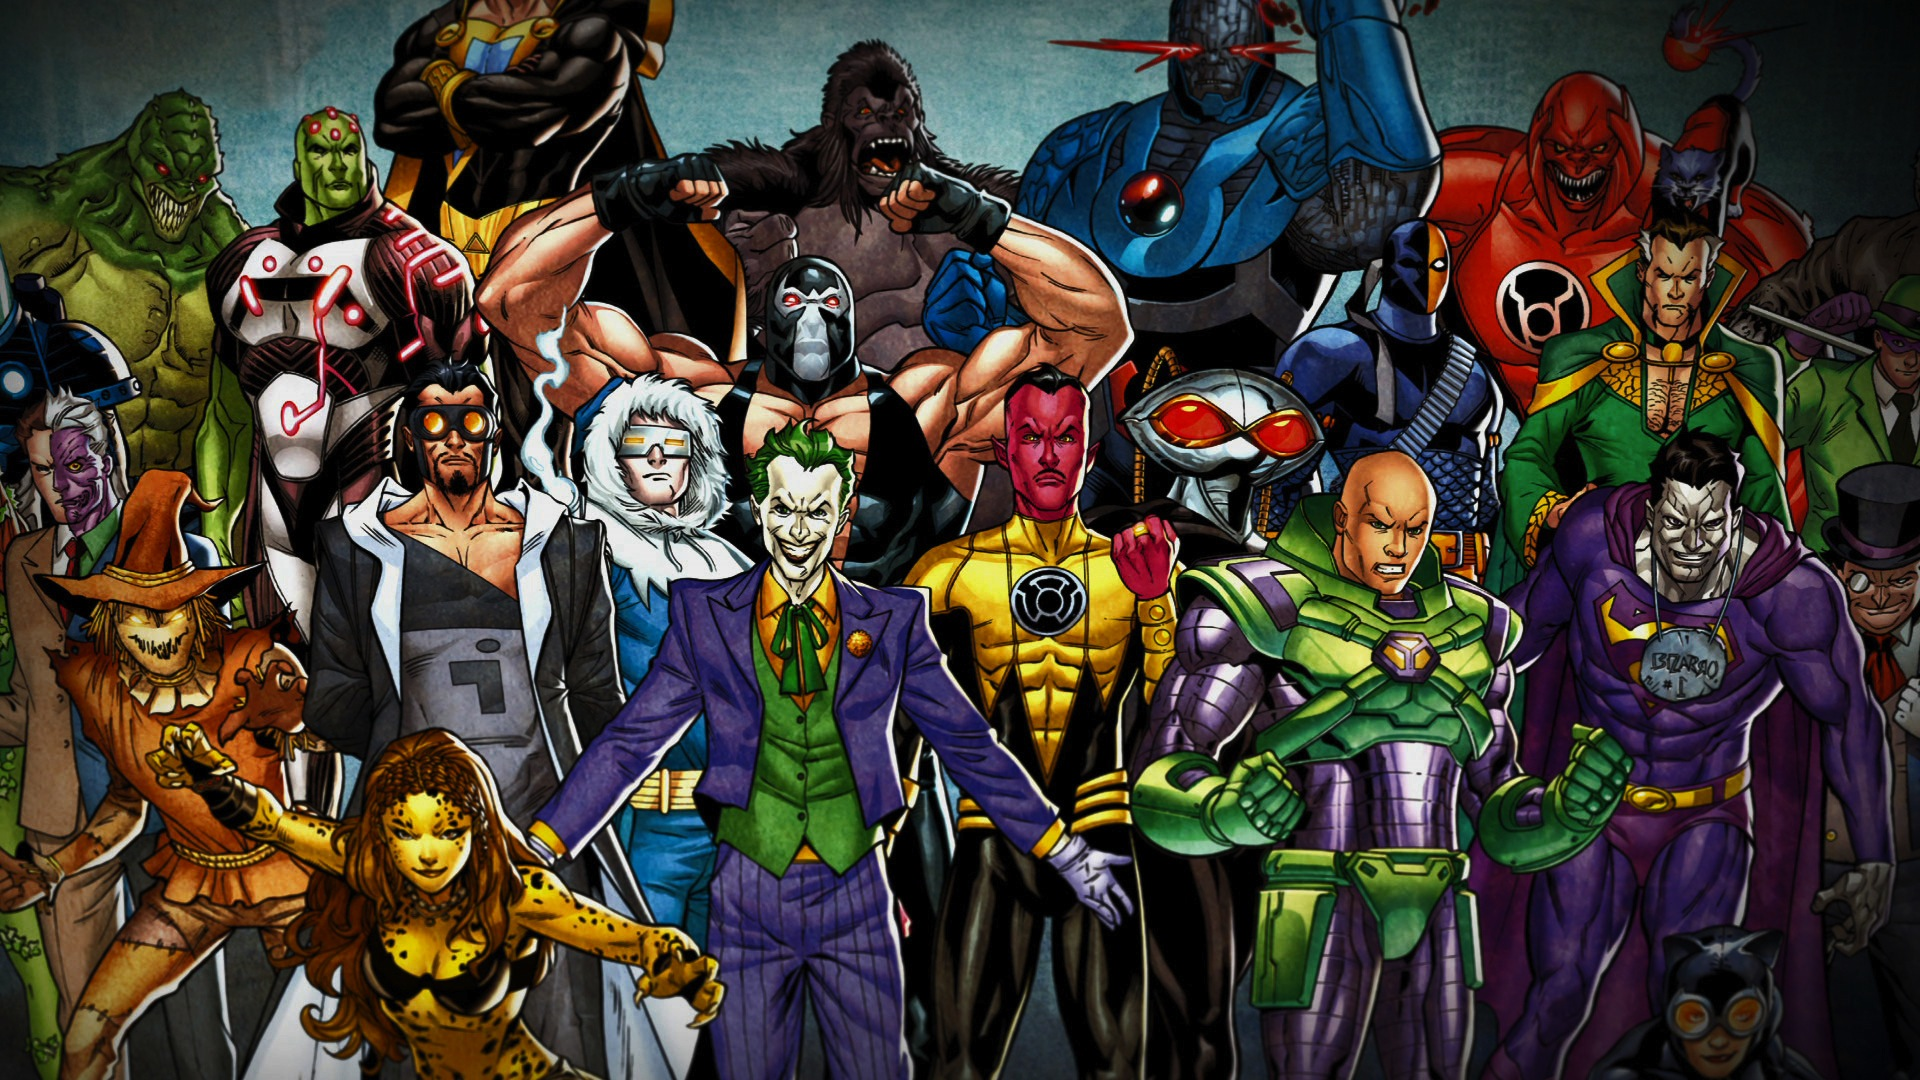 A collection of DC Super Villains